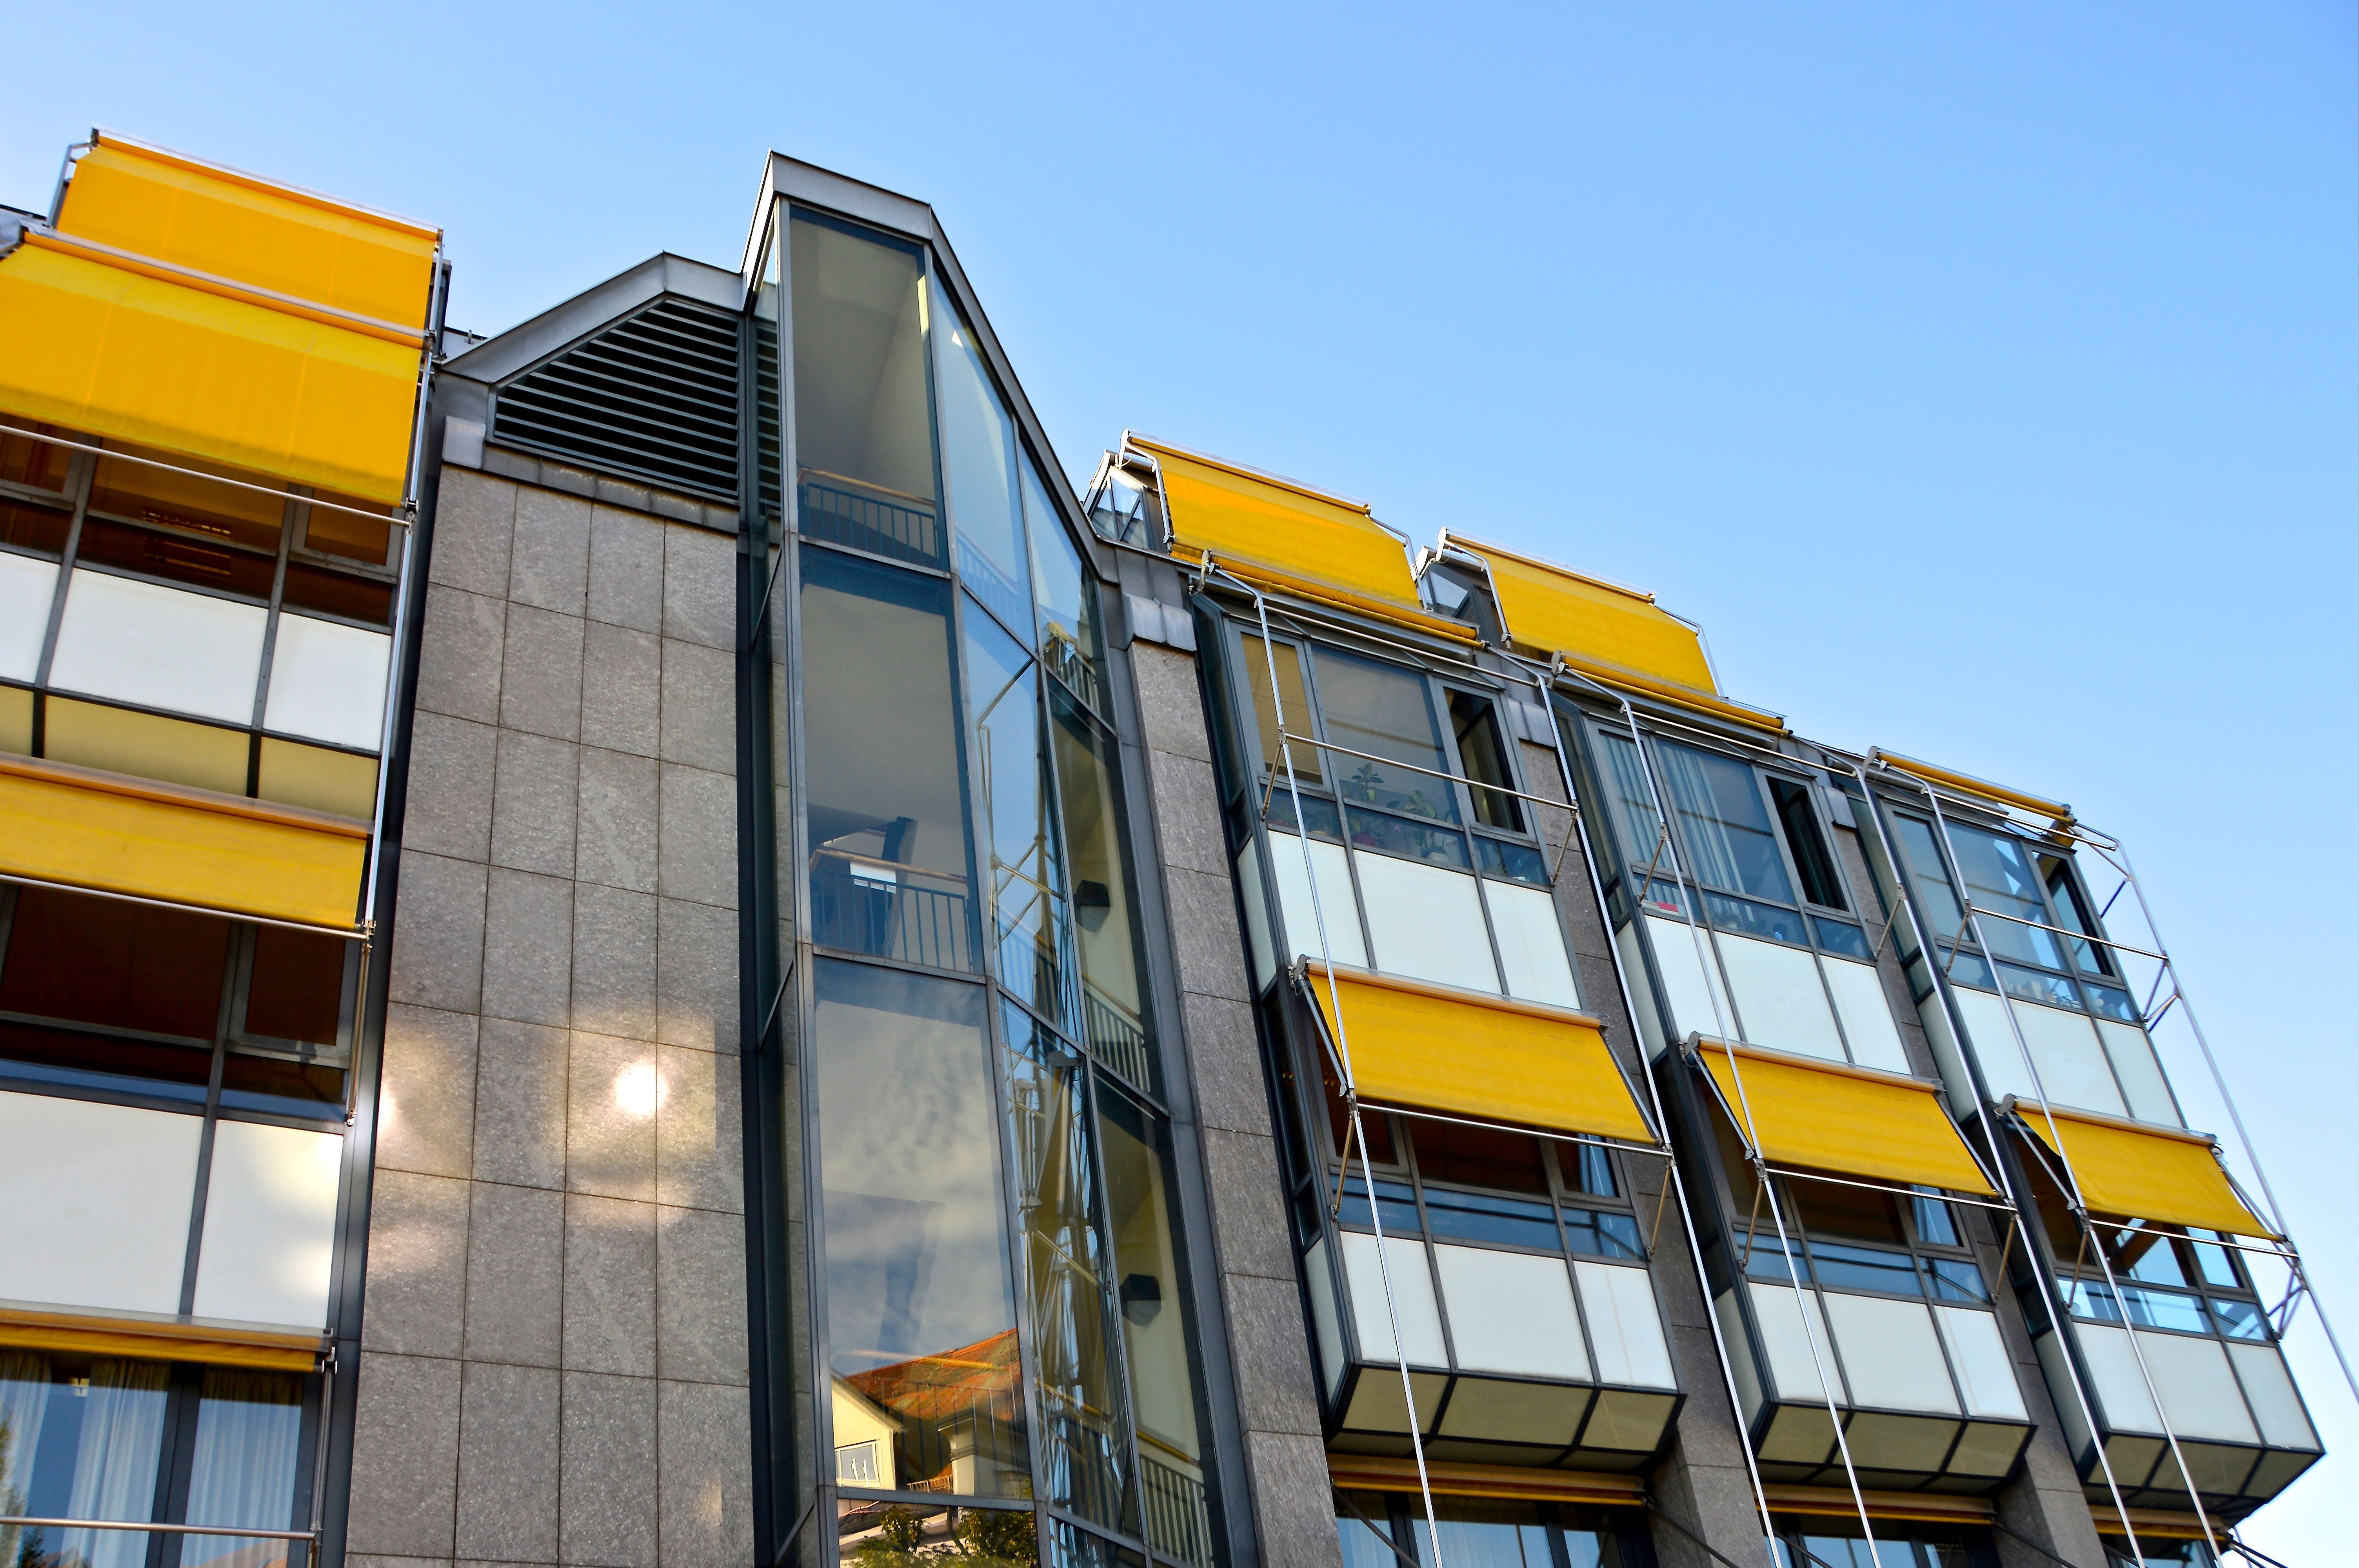 Worm's Eye View of Gray and Yellow Building